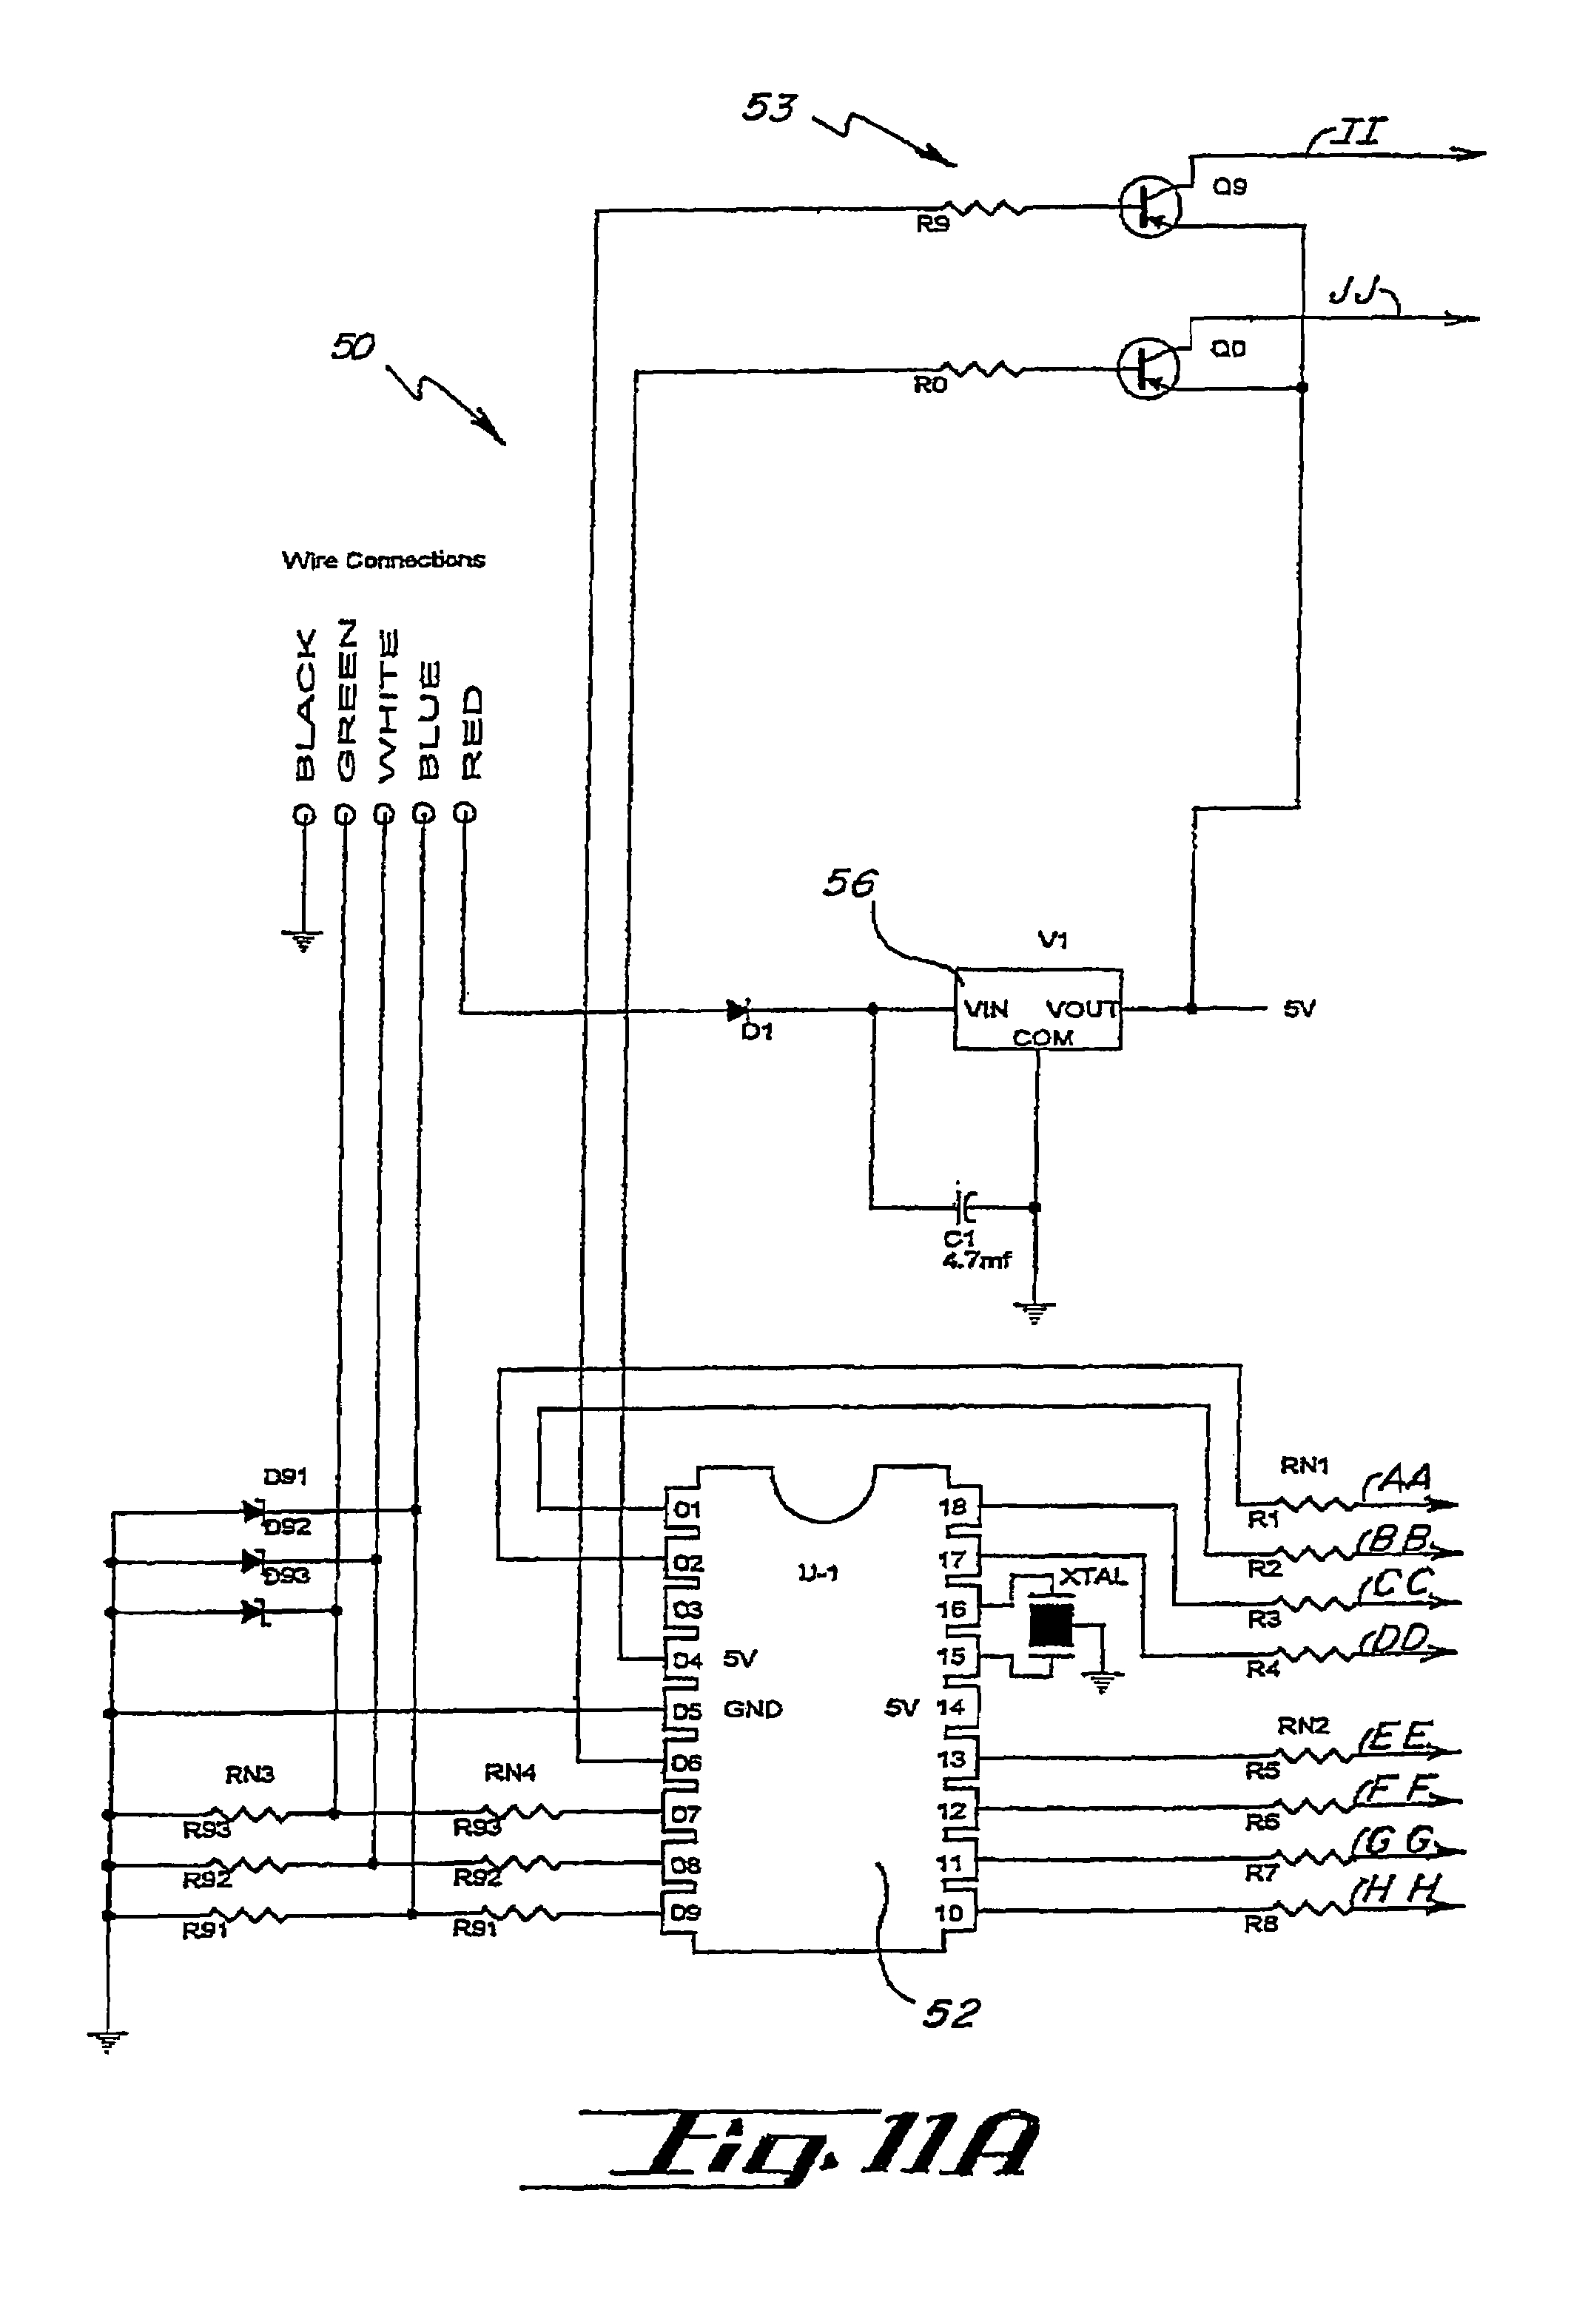 Federal Signal Pa300 Wiring Harness Diagram. . Wiring Diagram on